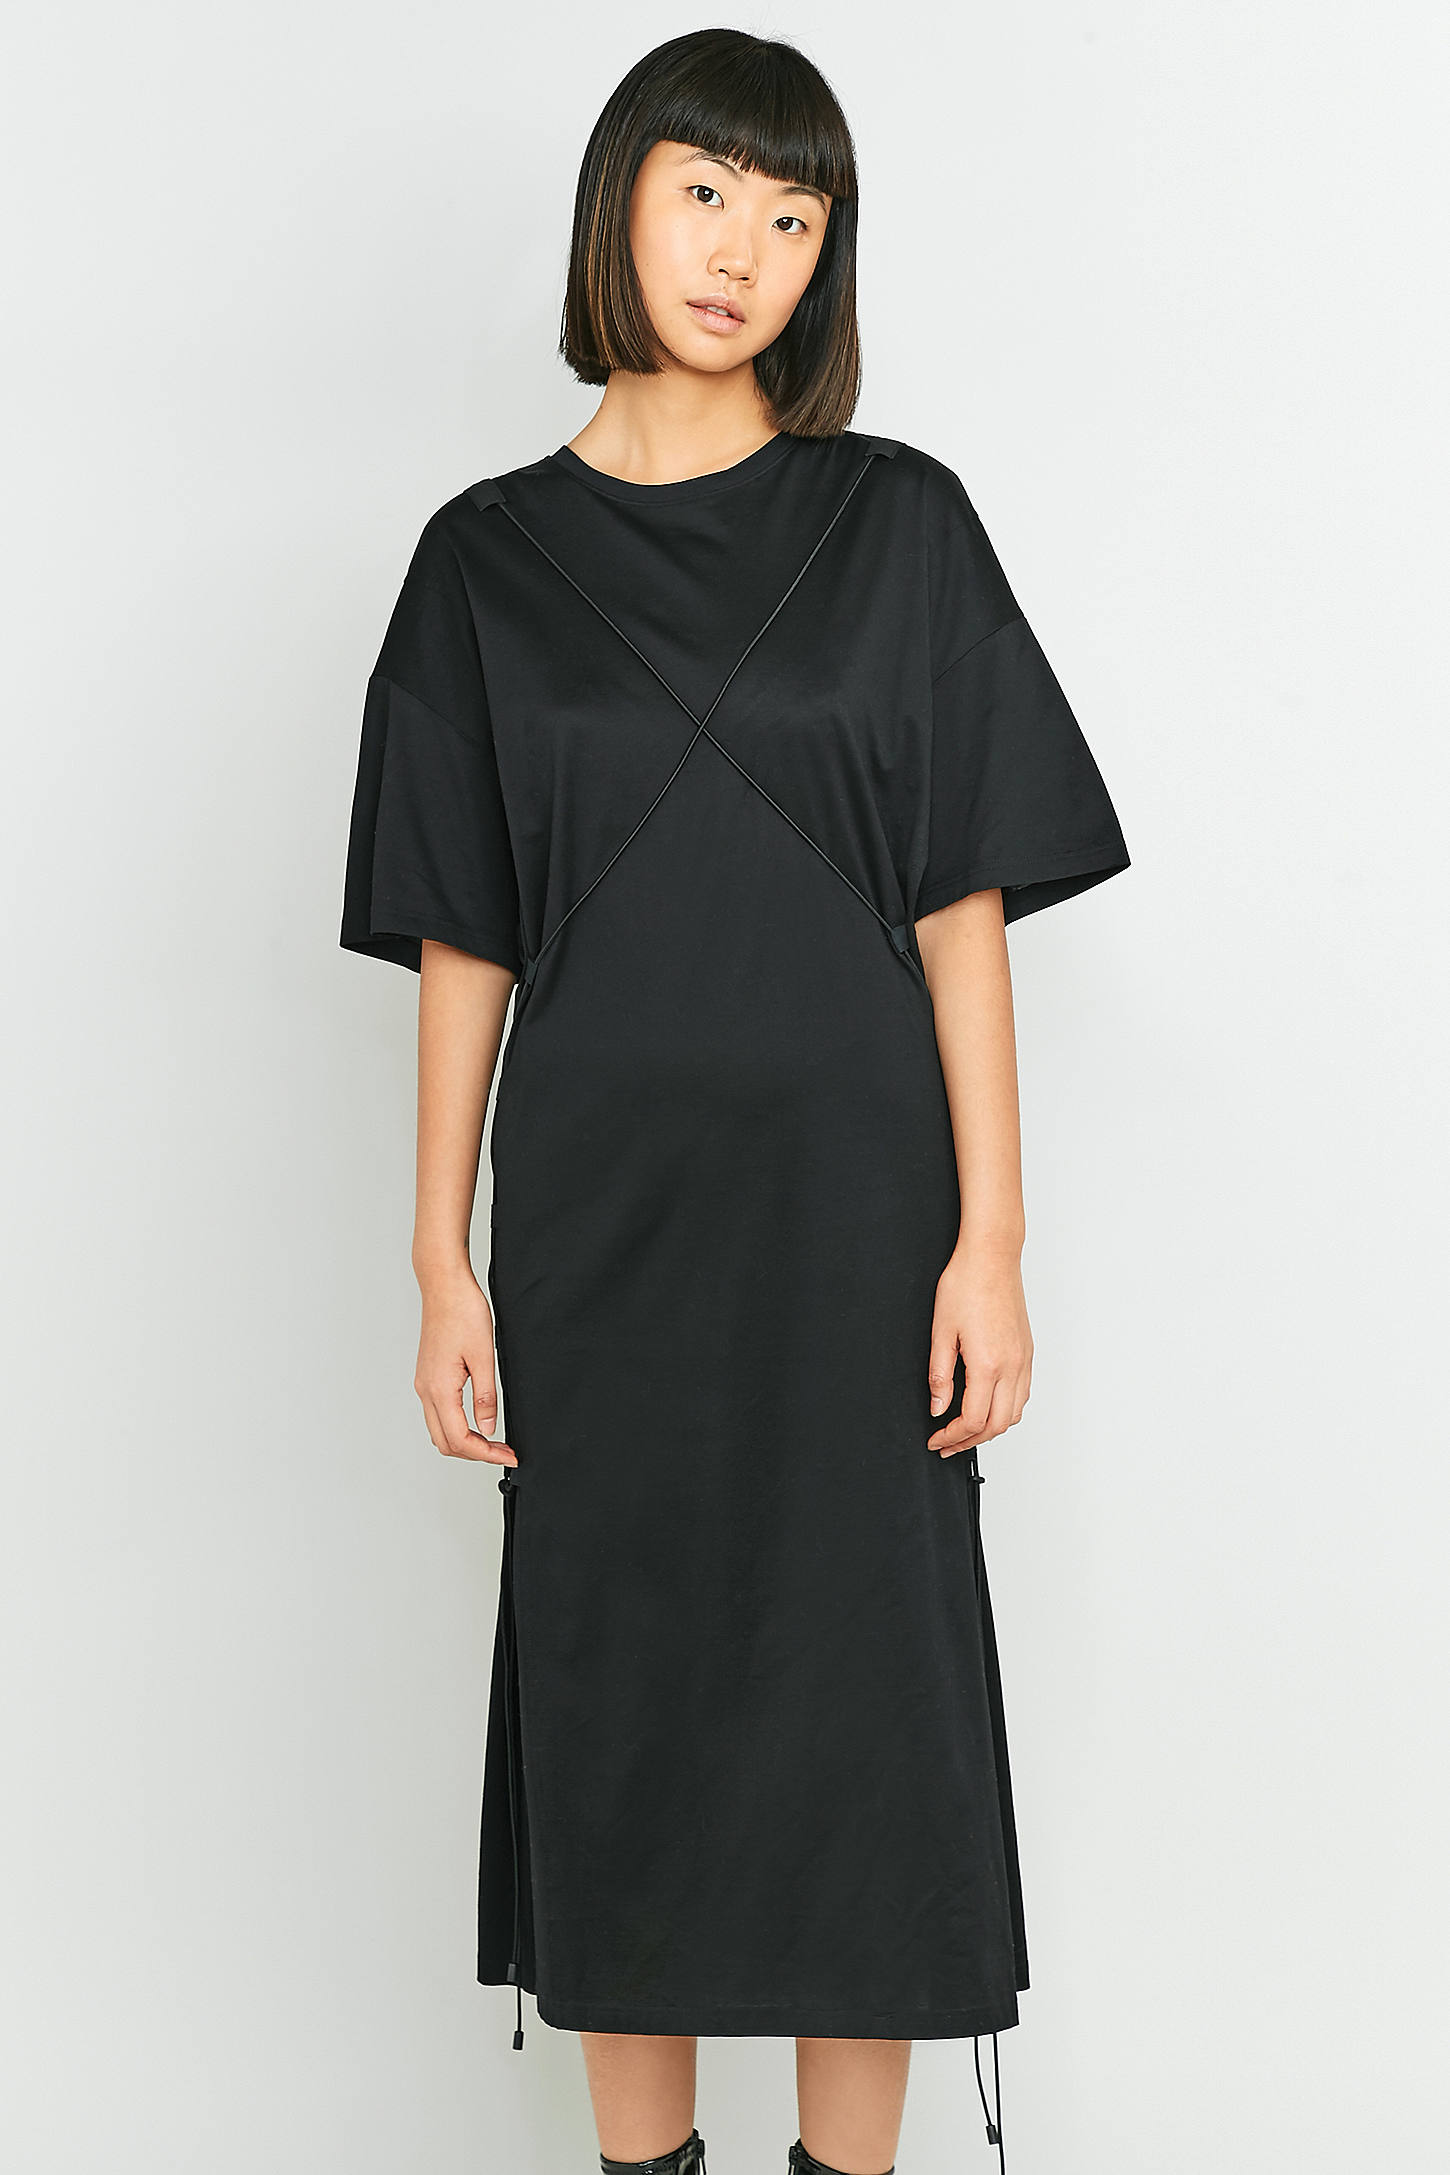 MARIOS Black String Maxi T-shirt Dress | Urban Outfitters